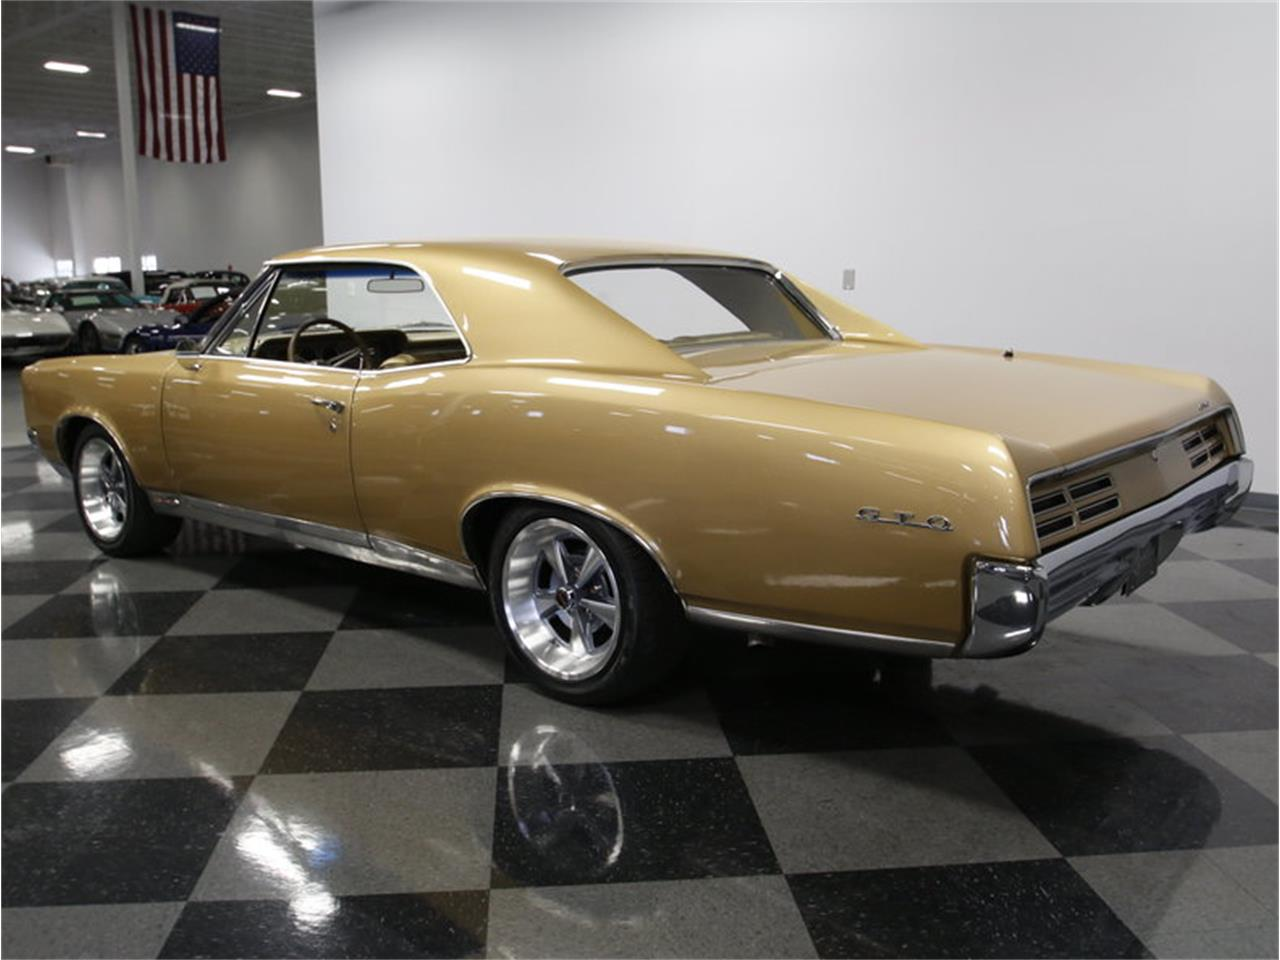 Large Picture of '67 Pontiac GTO located in North Carolina - $51,995.00 - L52I